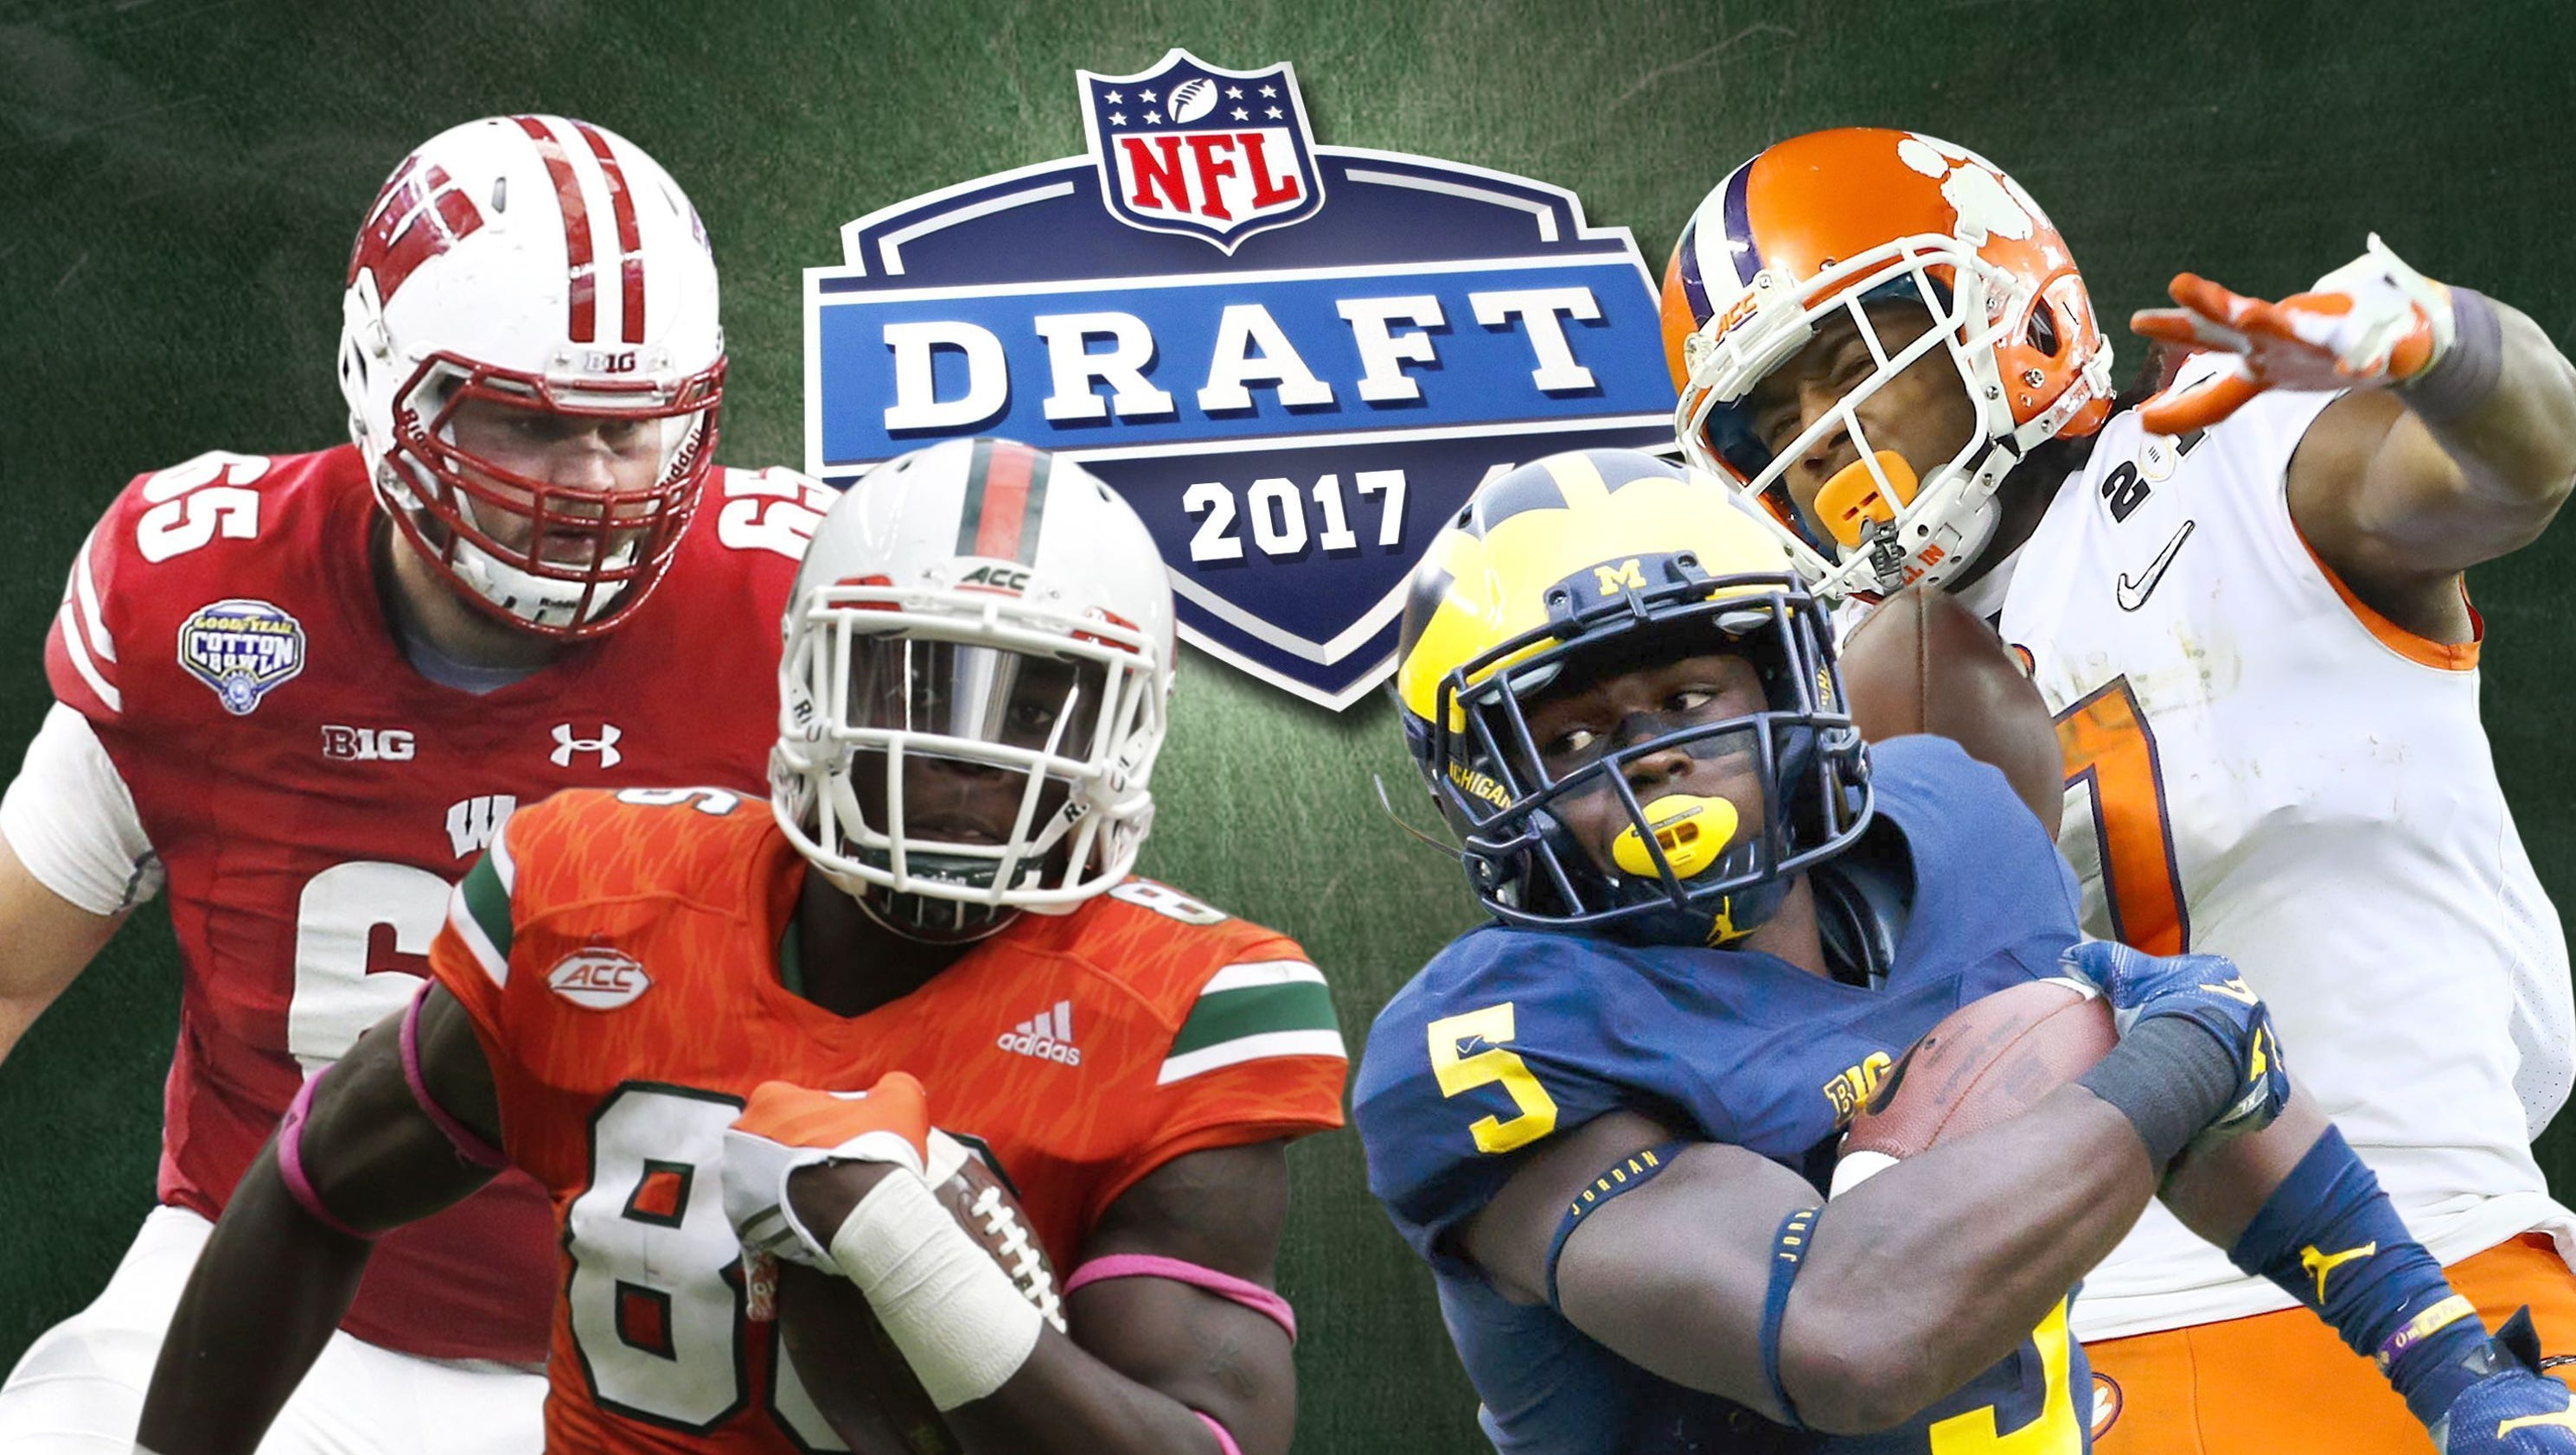 636276228127952034-mock-draft-illo-sheet-041217